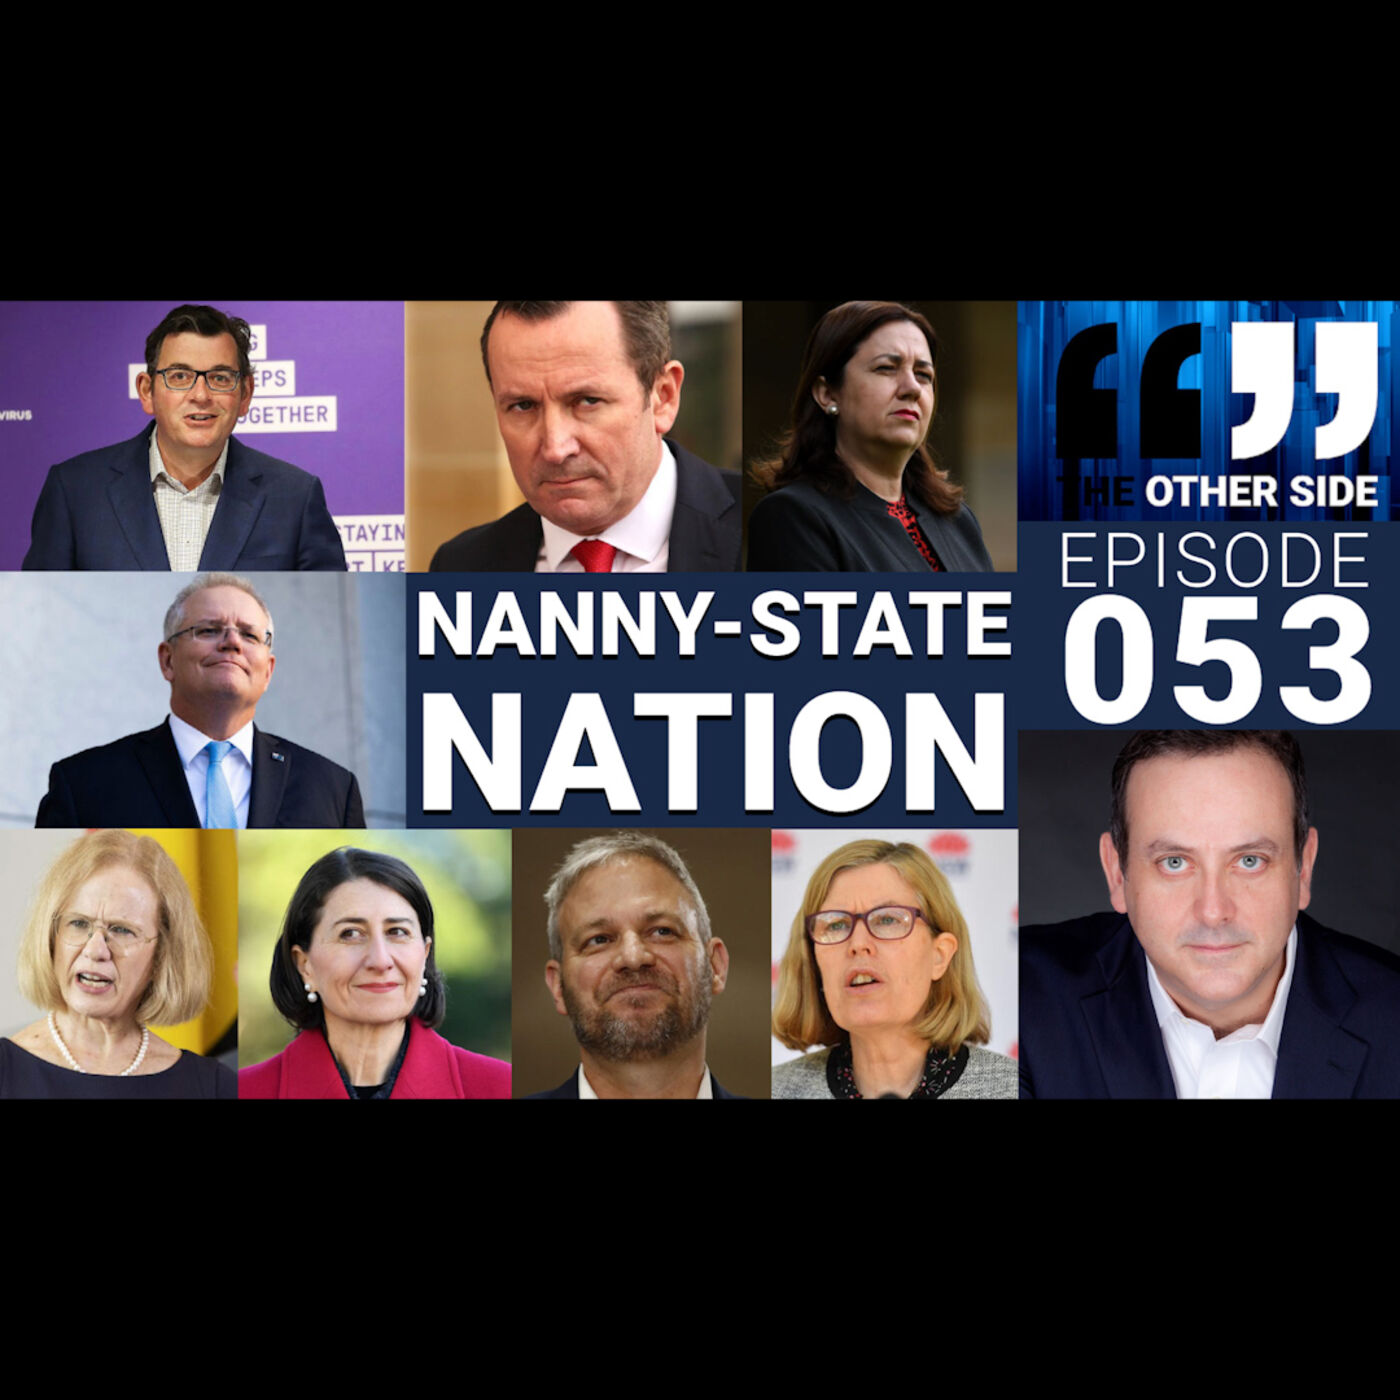 The Other Side Australia Episode 53: NANNY-STATE NATION